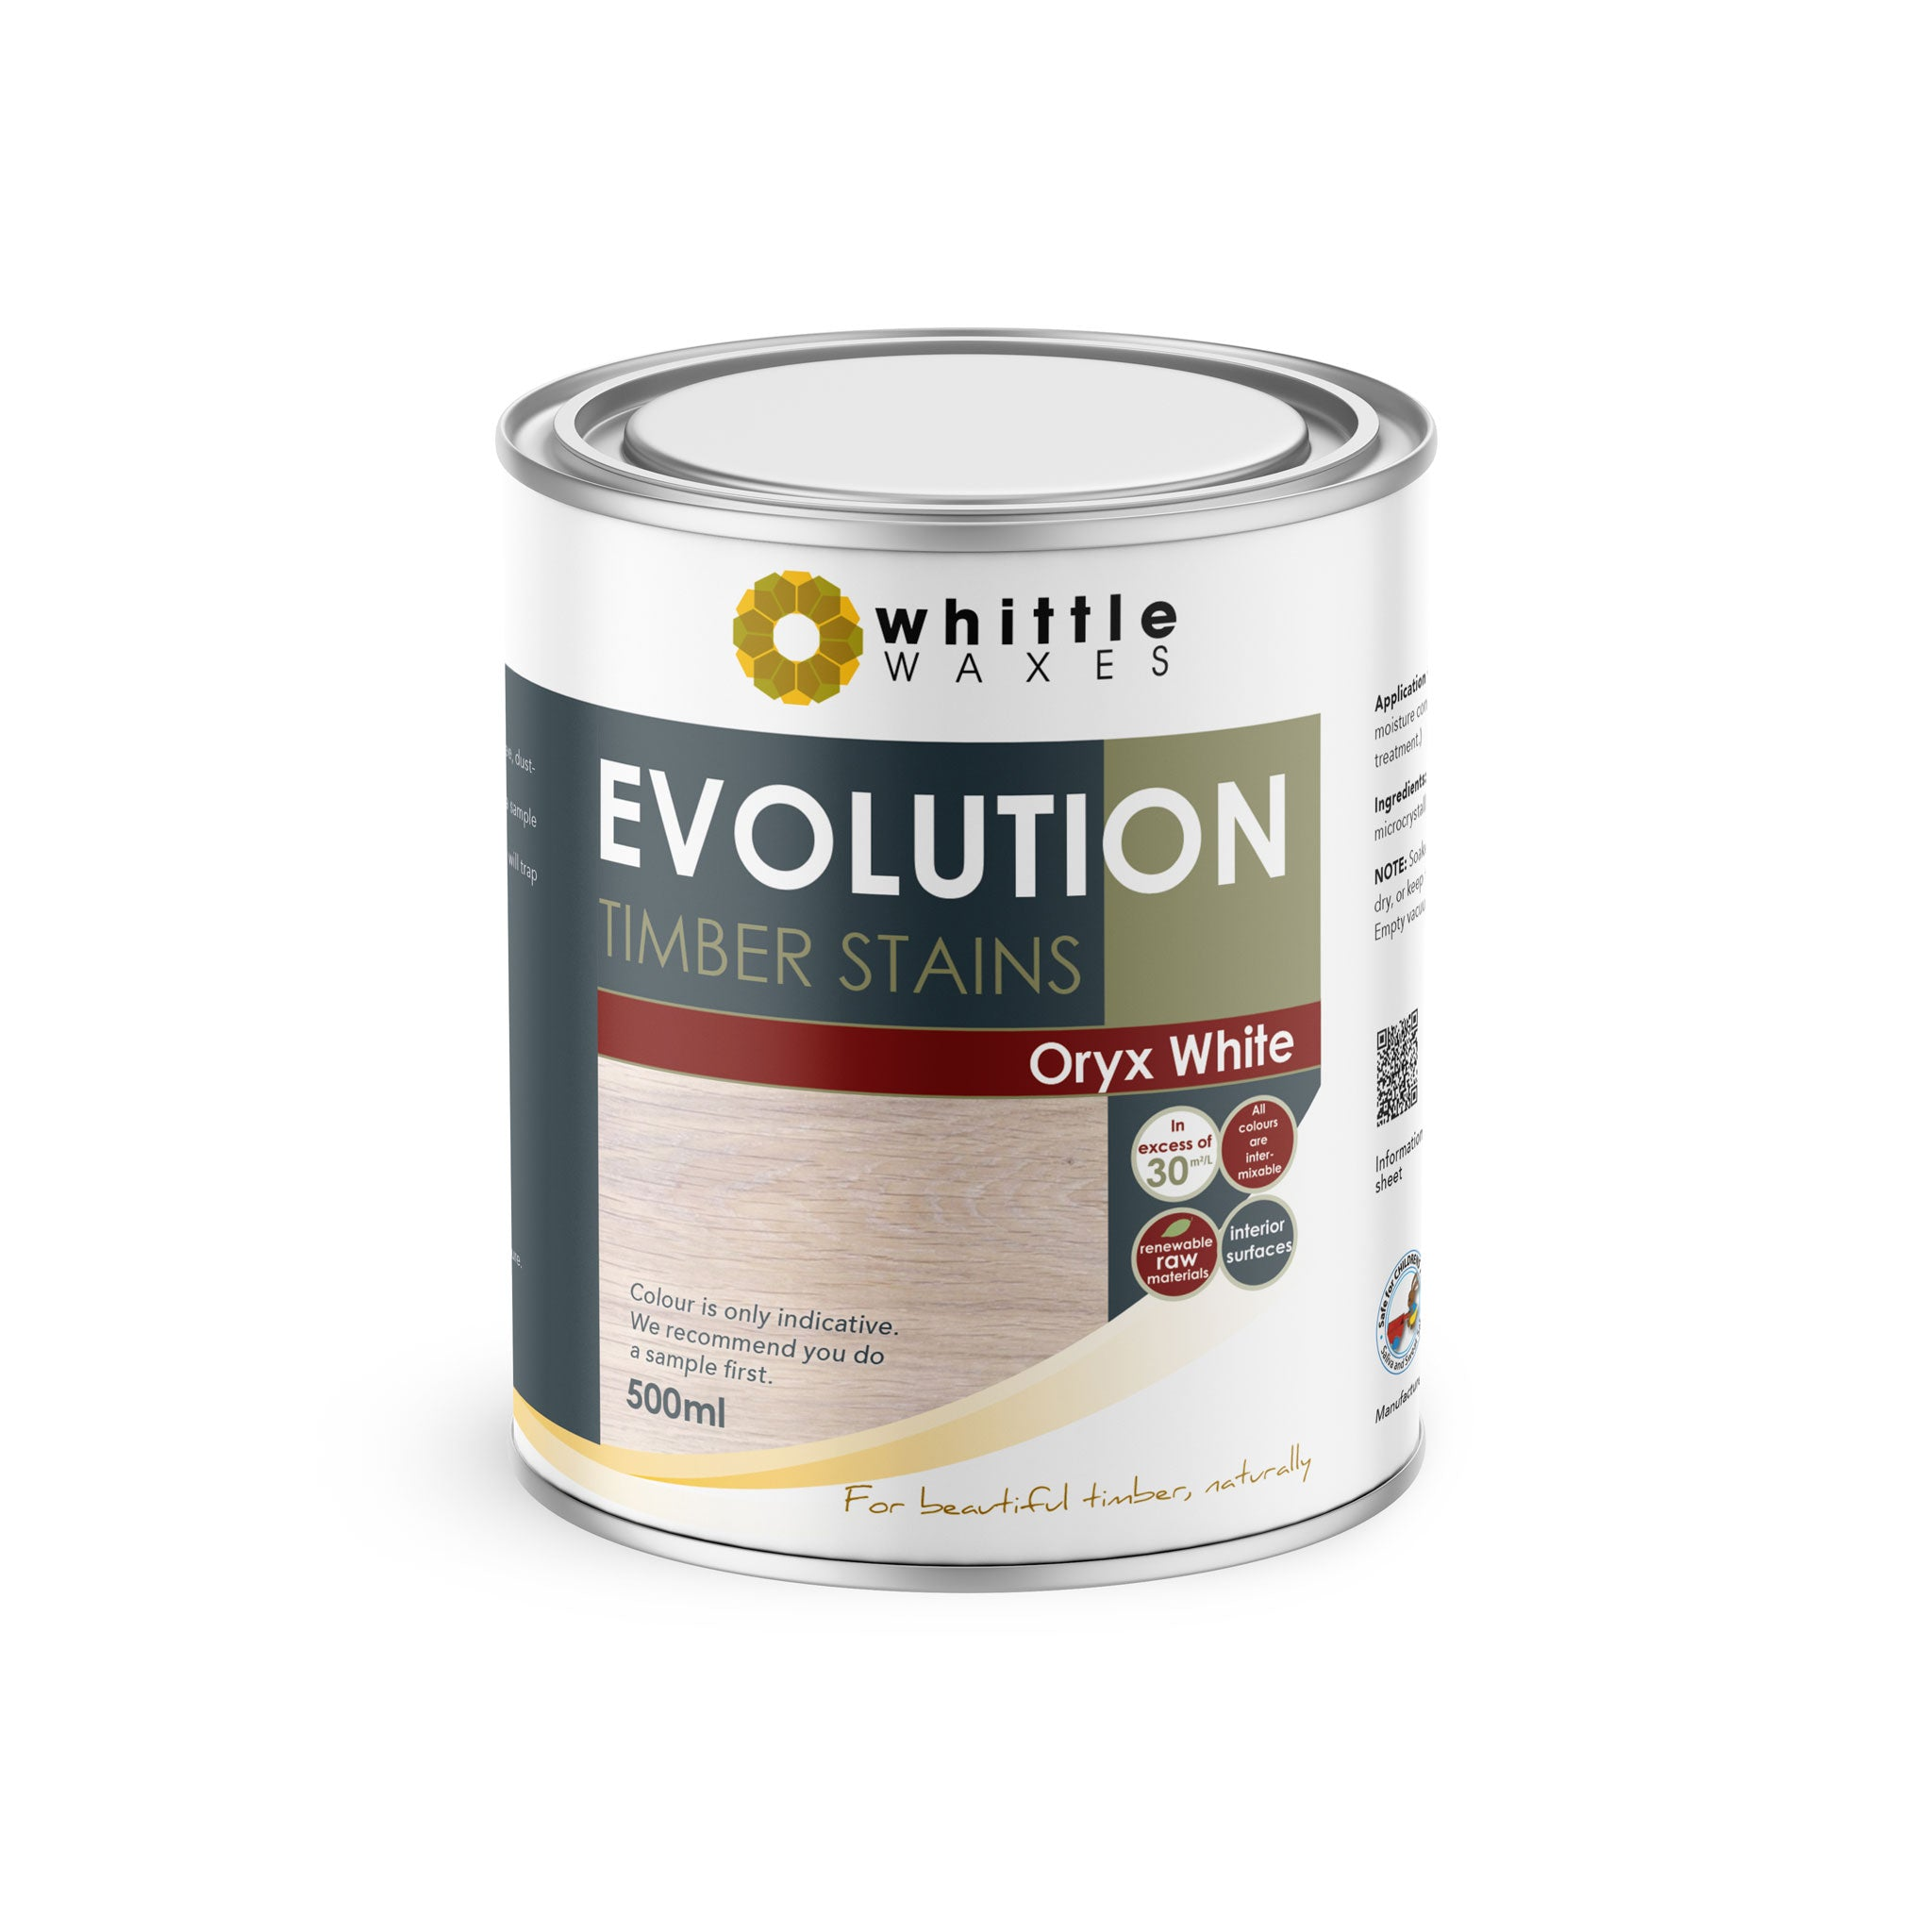 Whittle Waxes Evolution Colours (Oryx White) - quality timber stain - 500ml